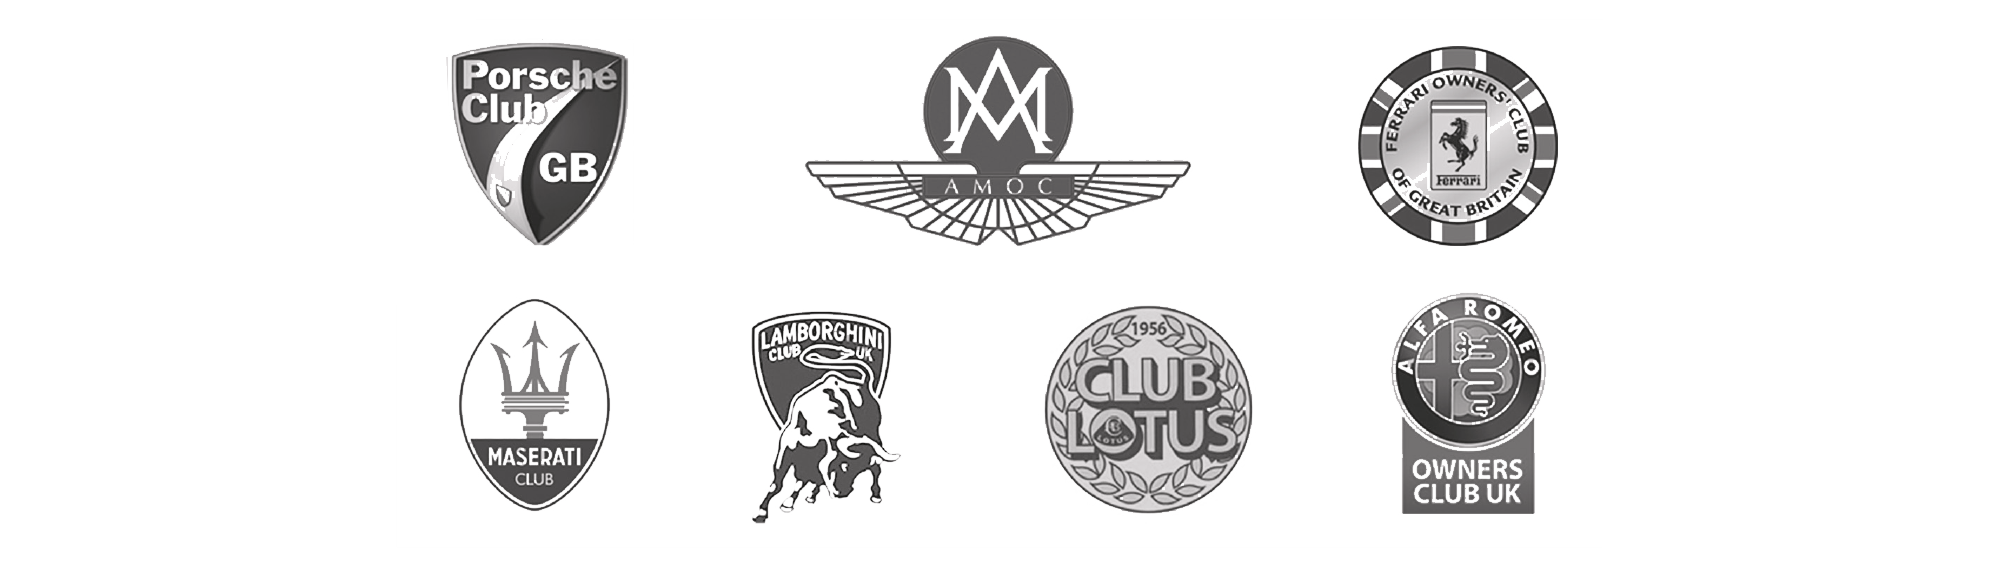 Porsche club, Ferrari owner's club, Club lotus, Maserati Club and more